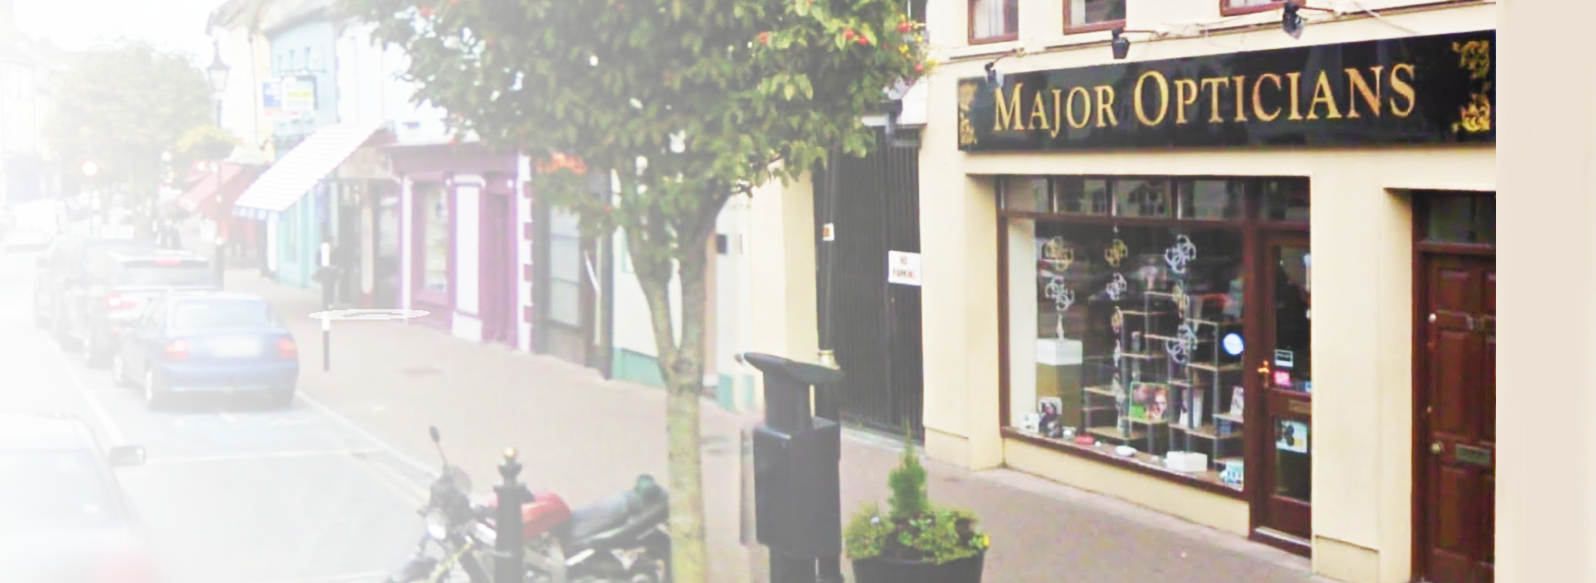 Major Opticians in Carrick-on -Suir shopfront